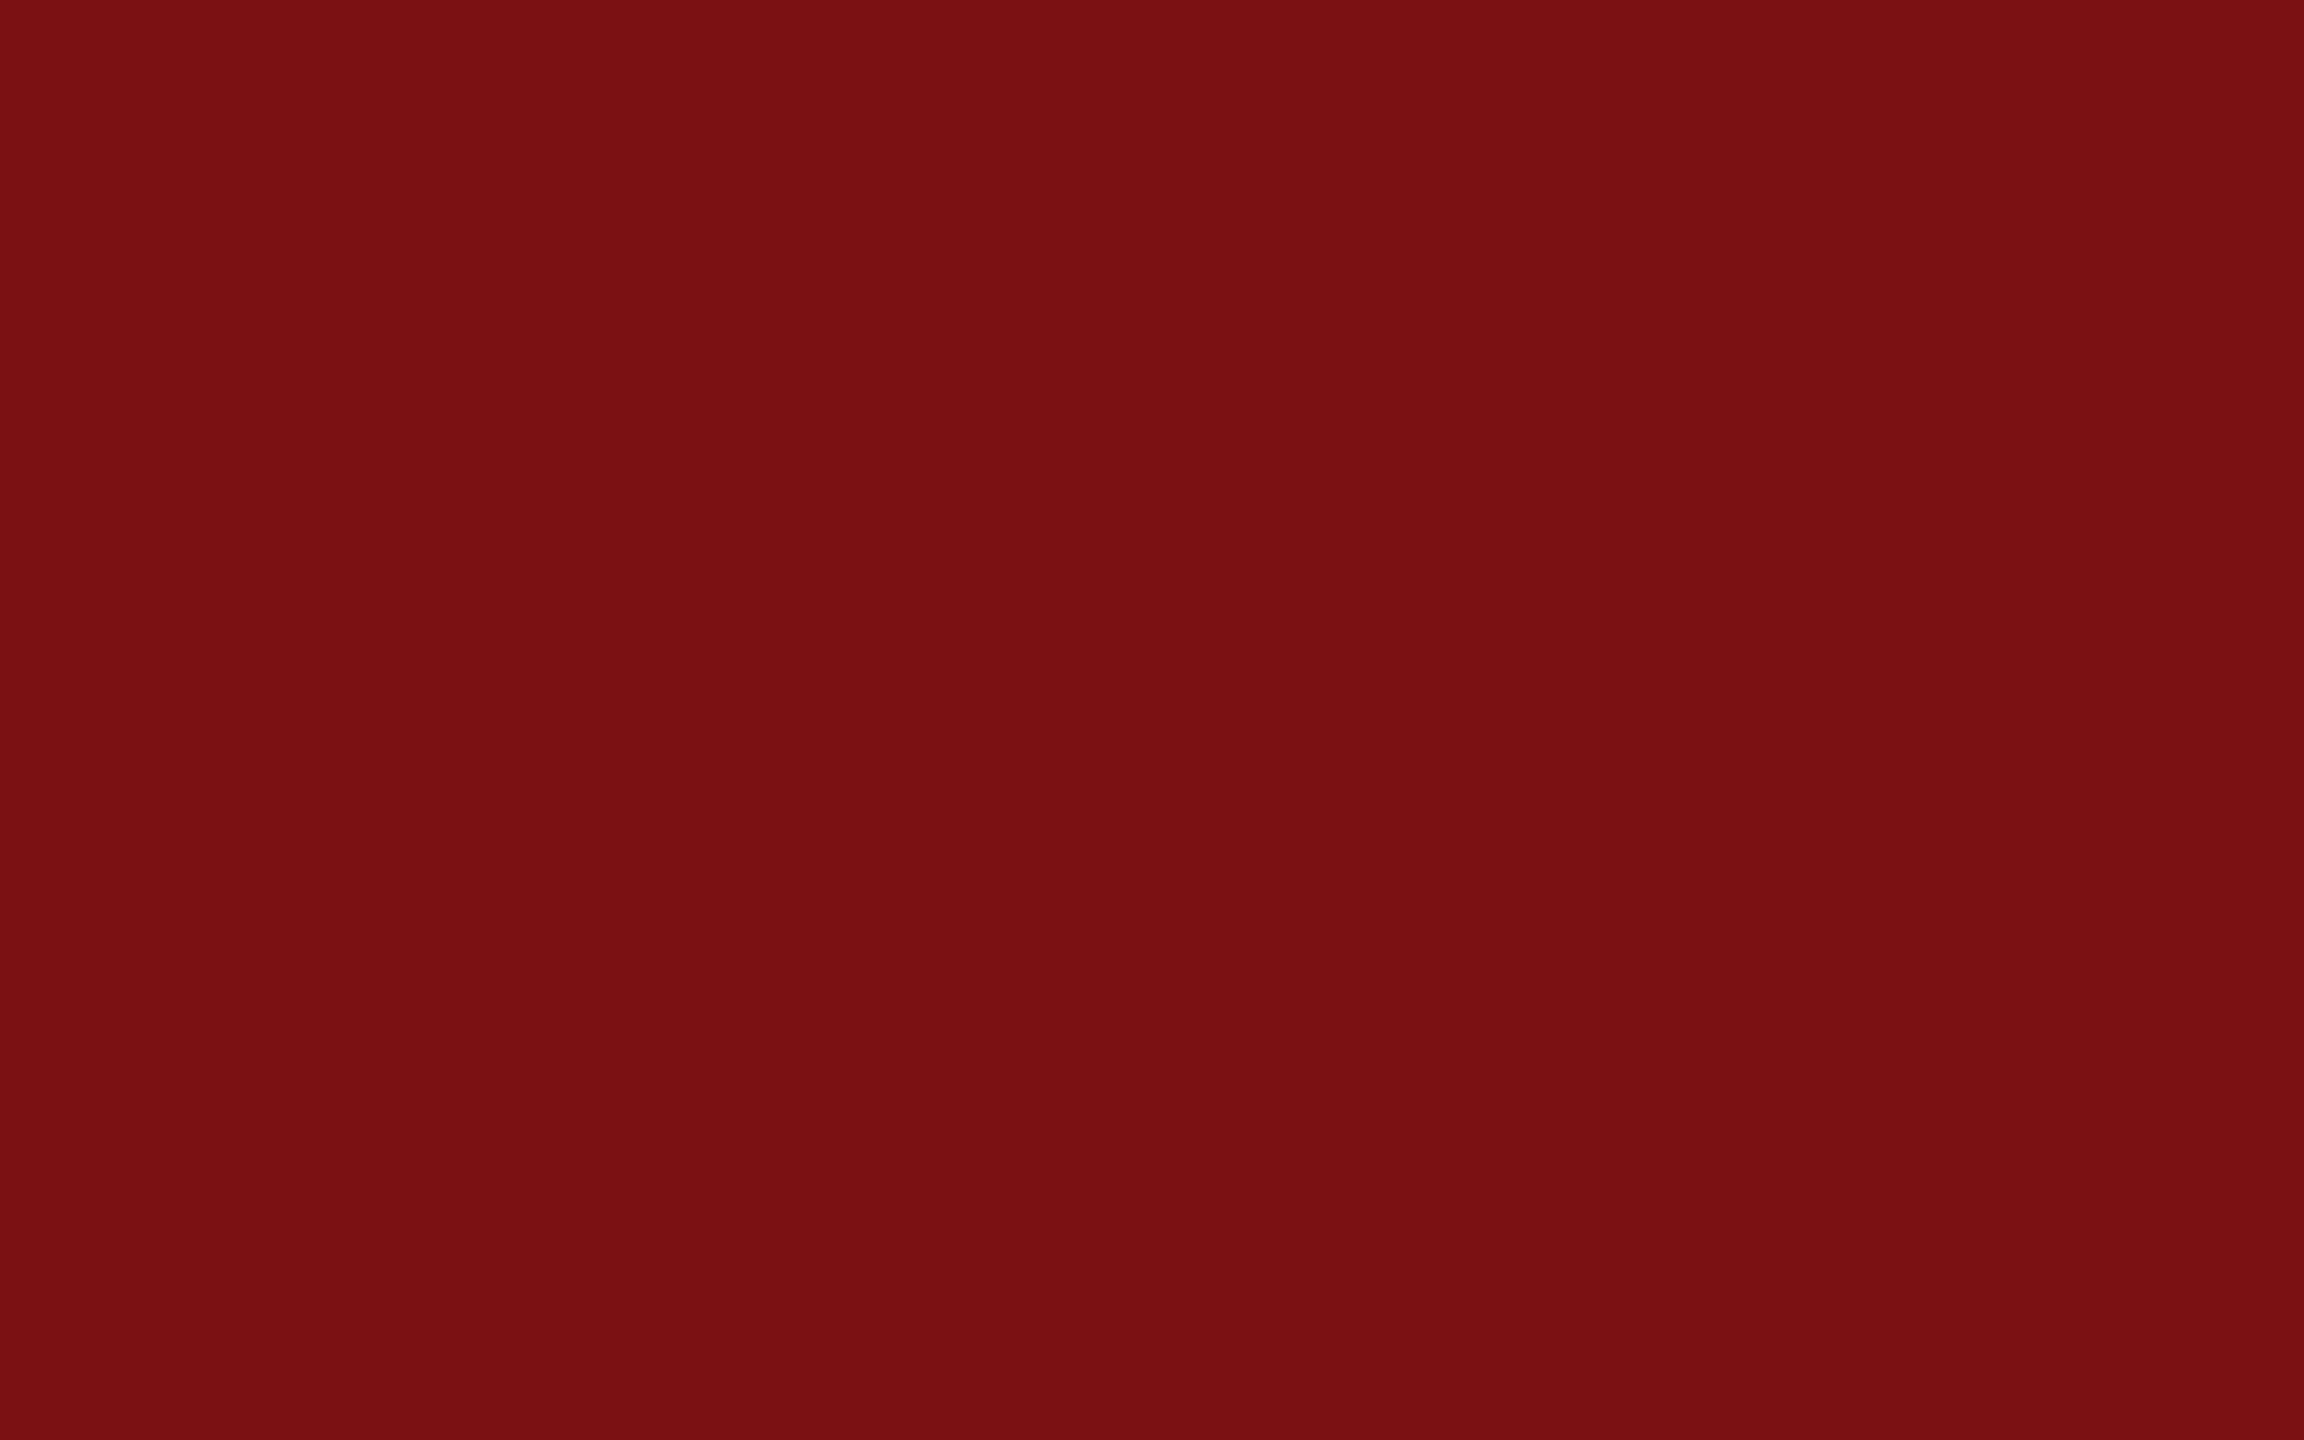 2304x1440 UP Maroon Solid Color Background